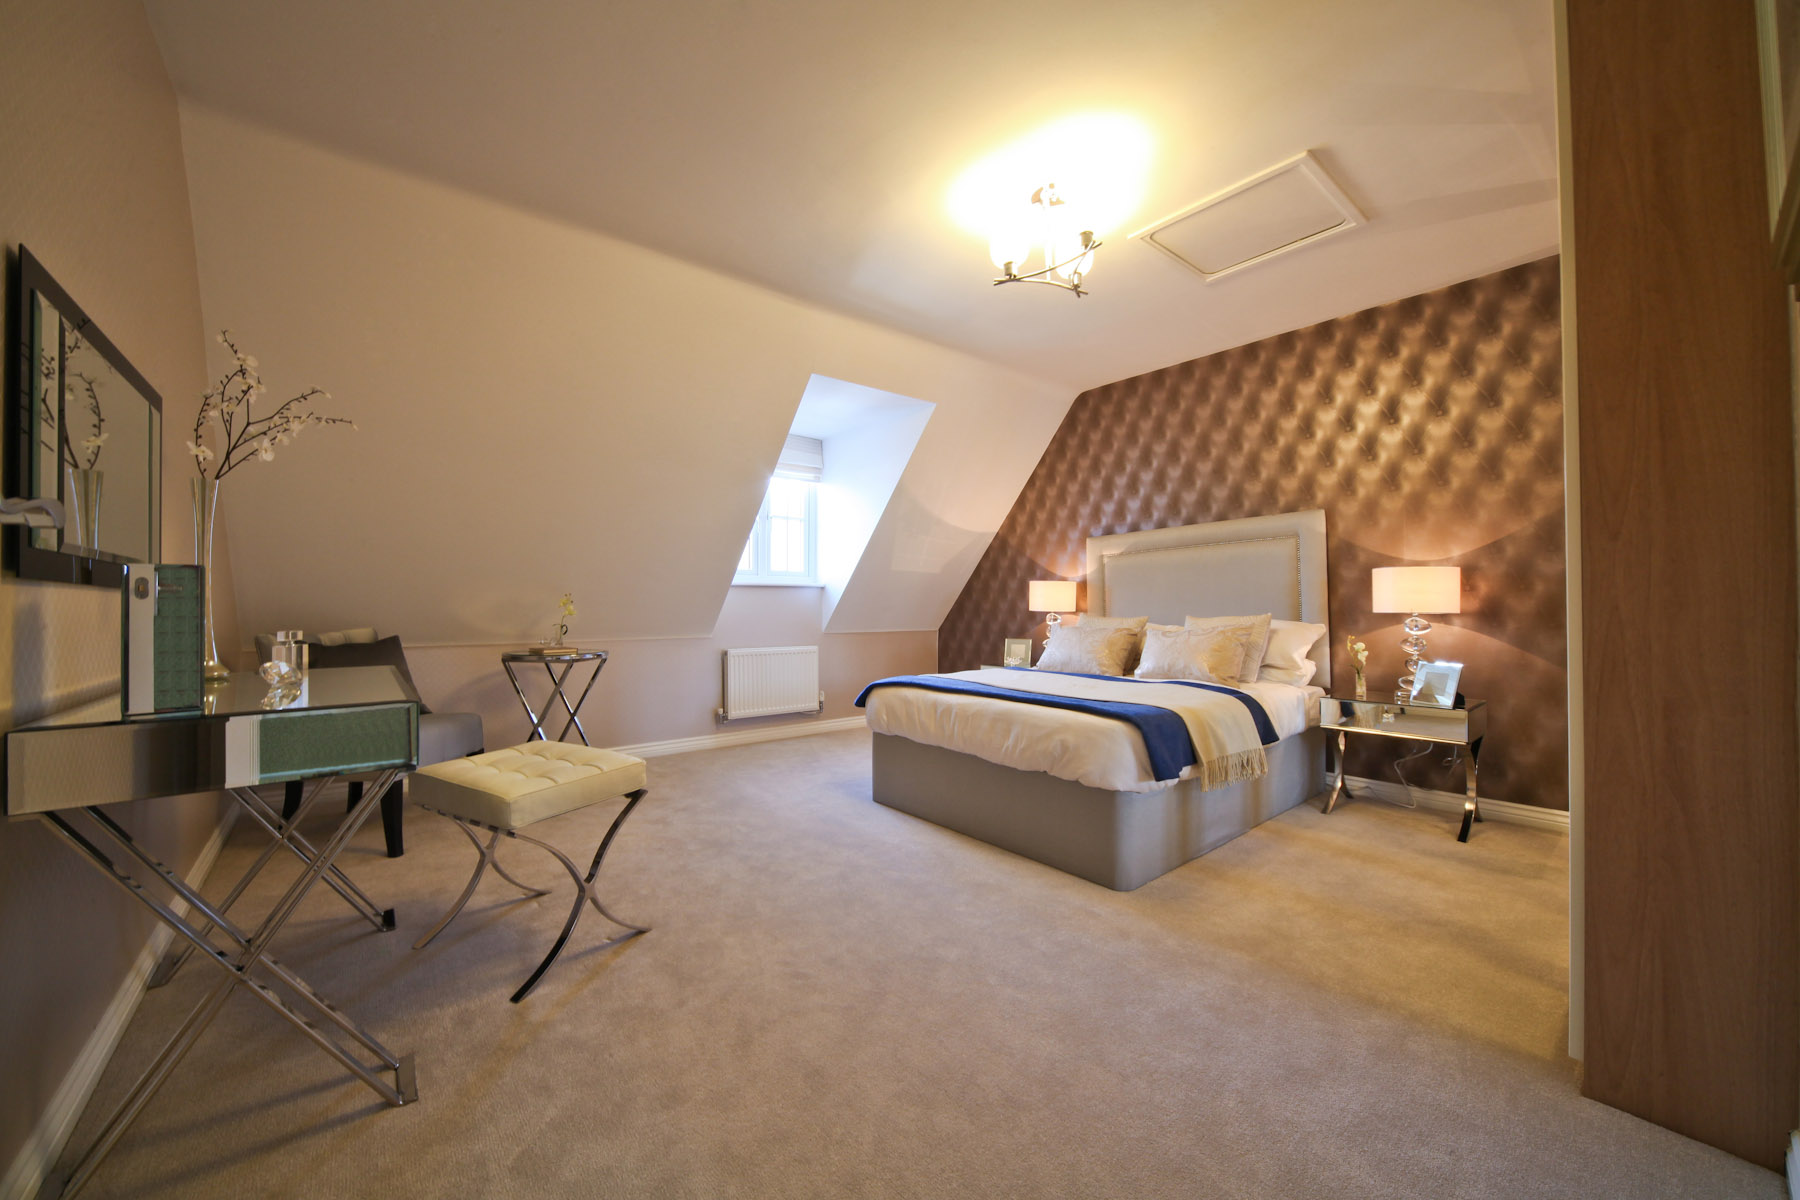 Taylor Wimpey typical bedroom